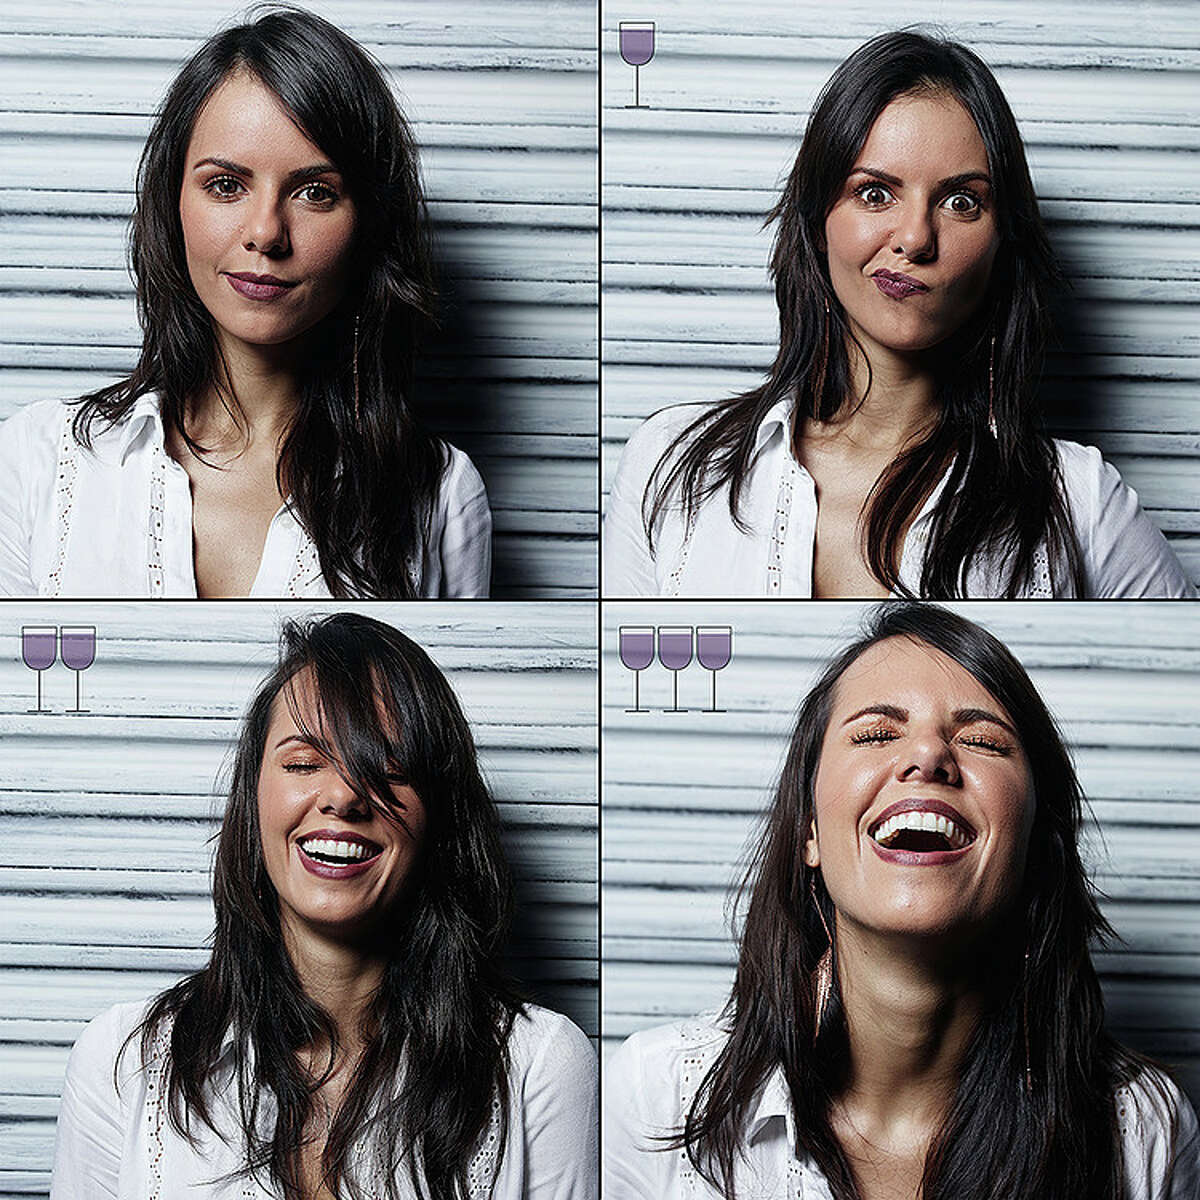 Brazilian photographer Marcos Alberti captured these images to show how people's appearances change as they drink wine.